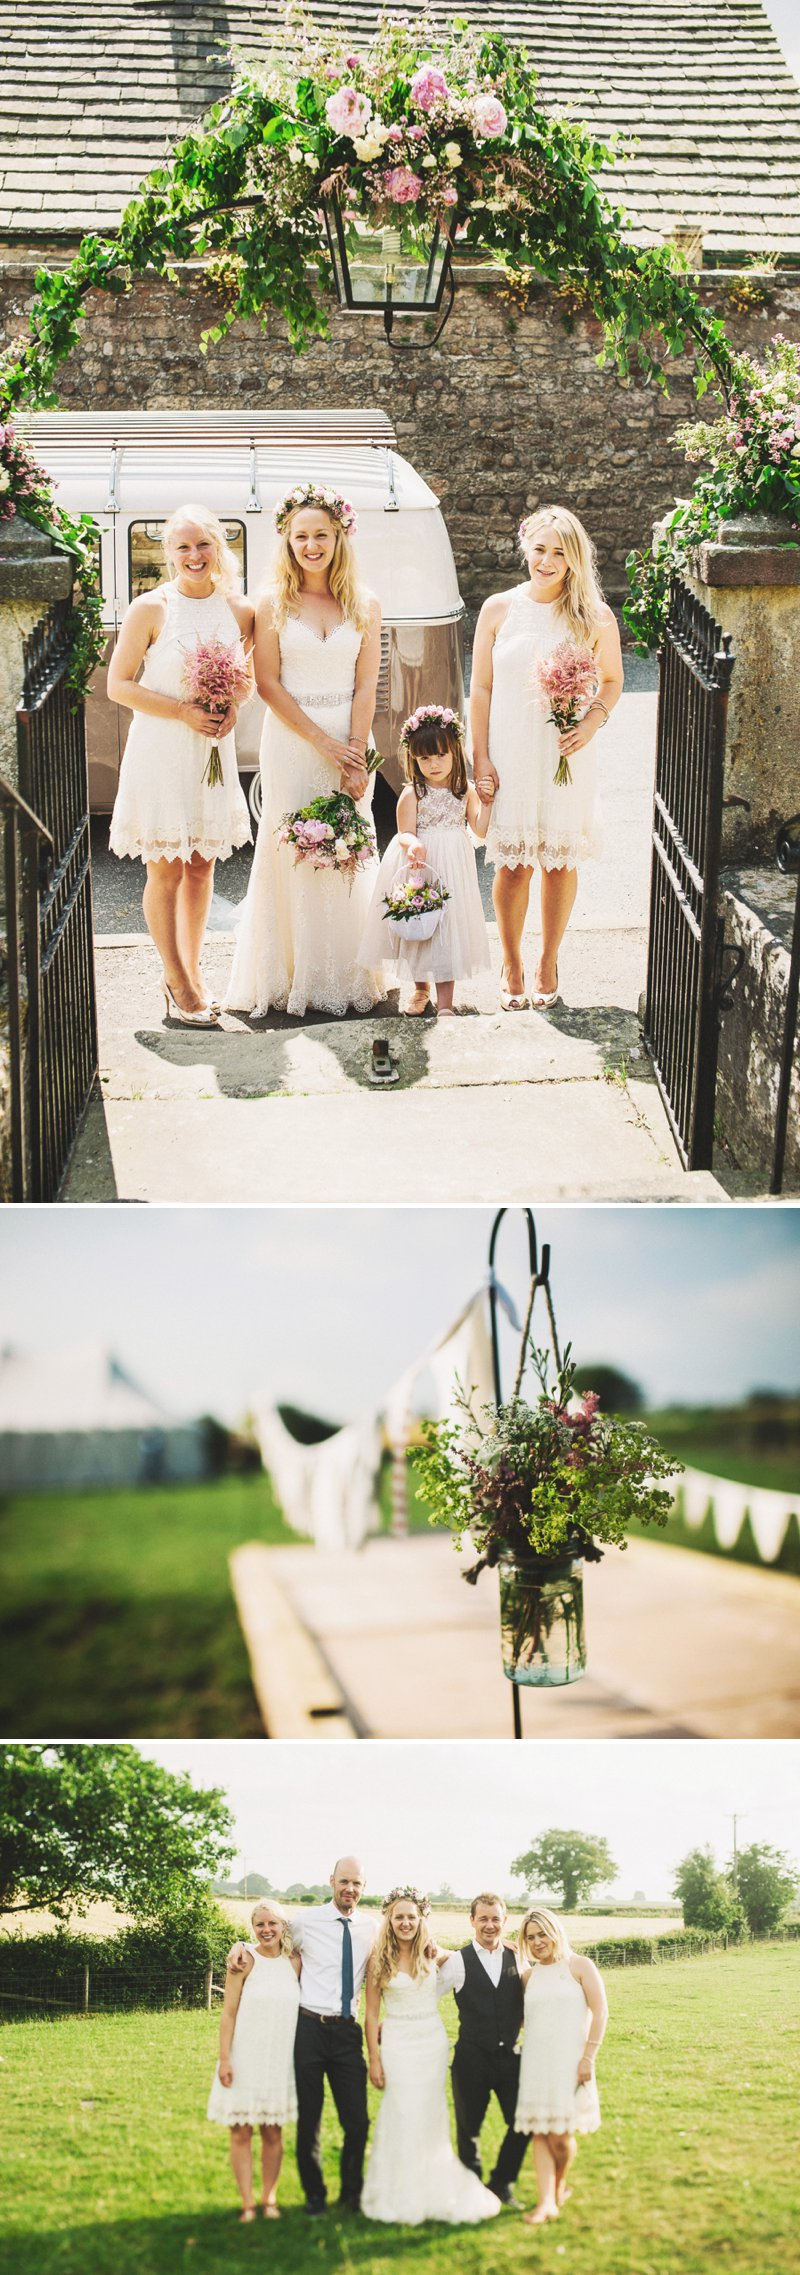 Rustic Marquee Wedding At Mallard Grange In Yorkshire With A Dusty Pink, Cream And Grey Colour Scheme With Bride In Gown From Eternity Bridal With A Vintage VW Camper Van 1